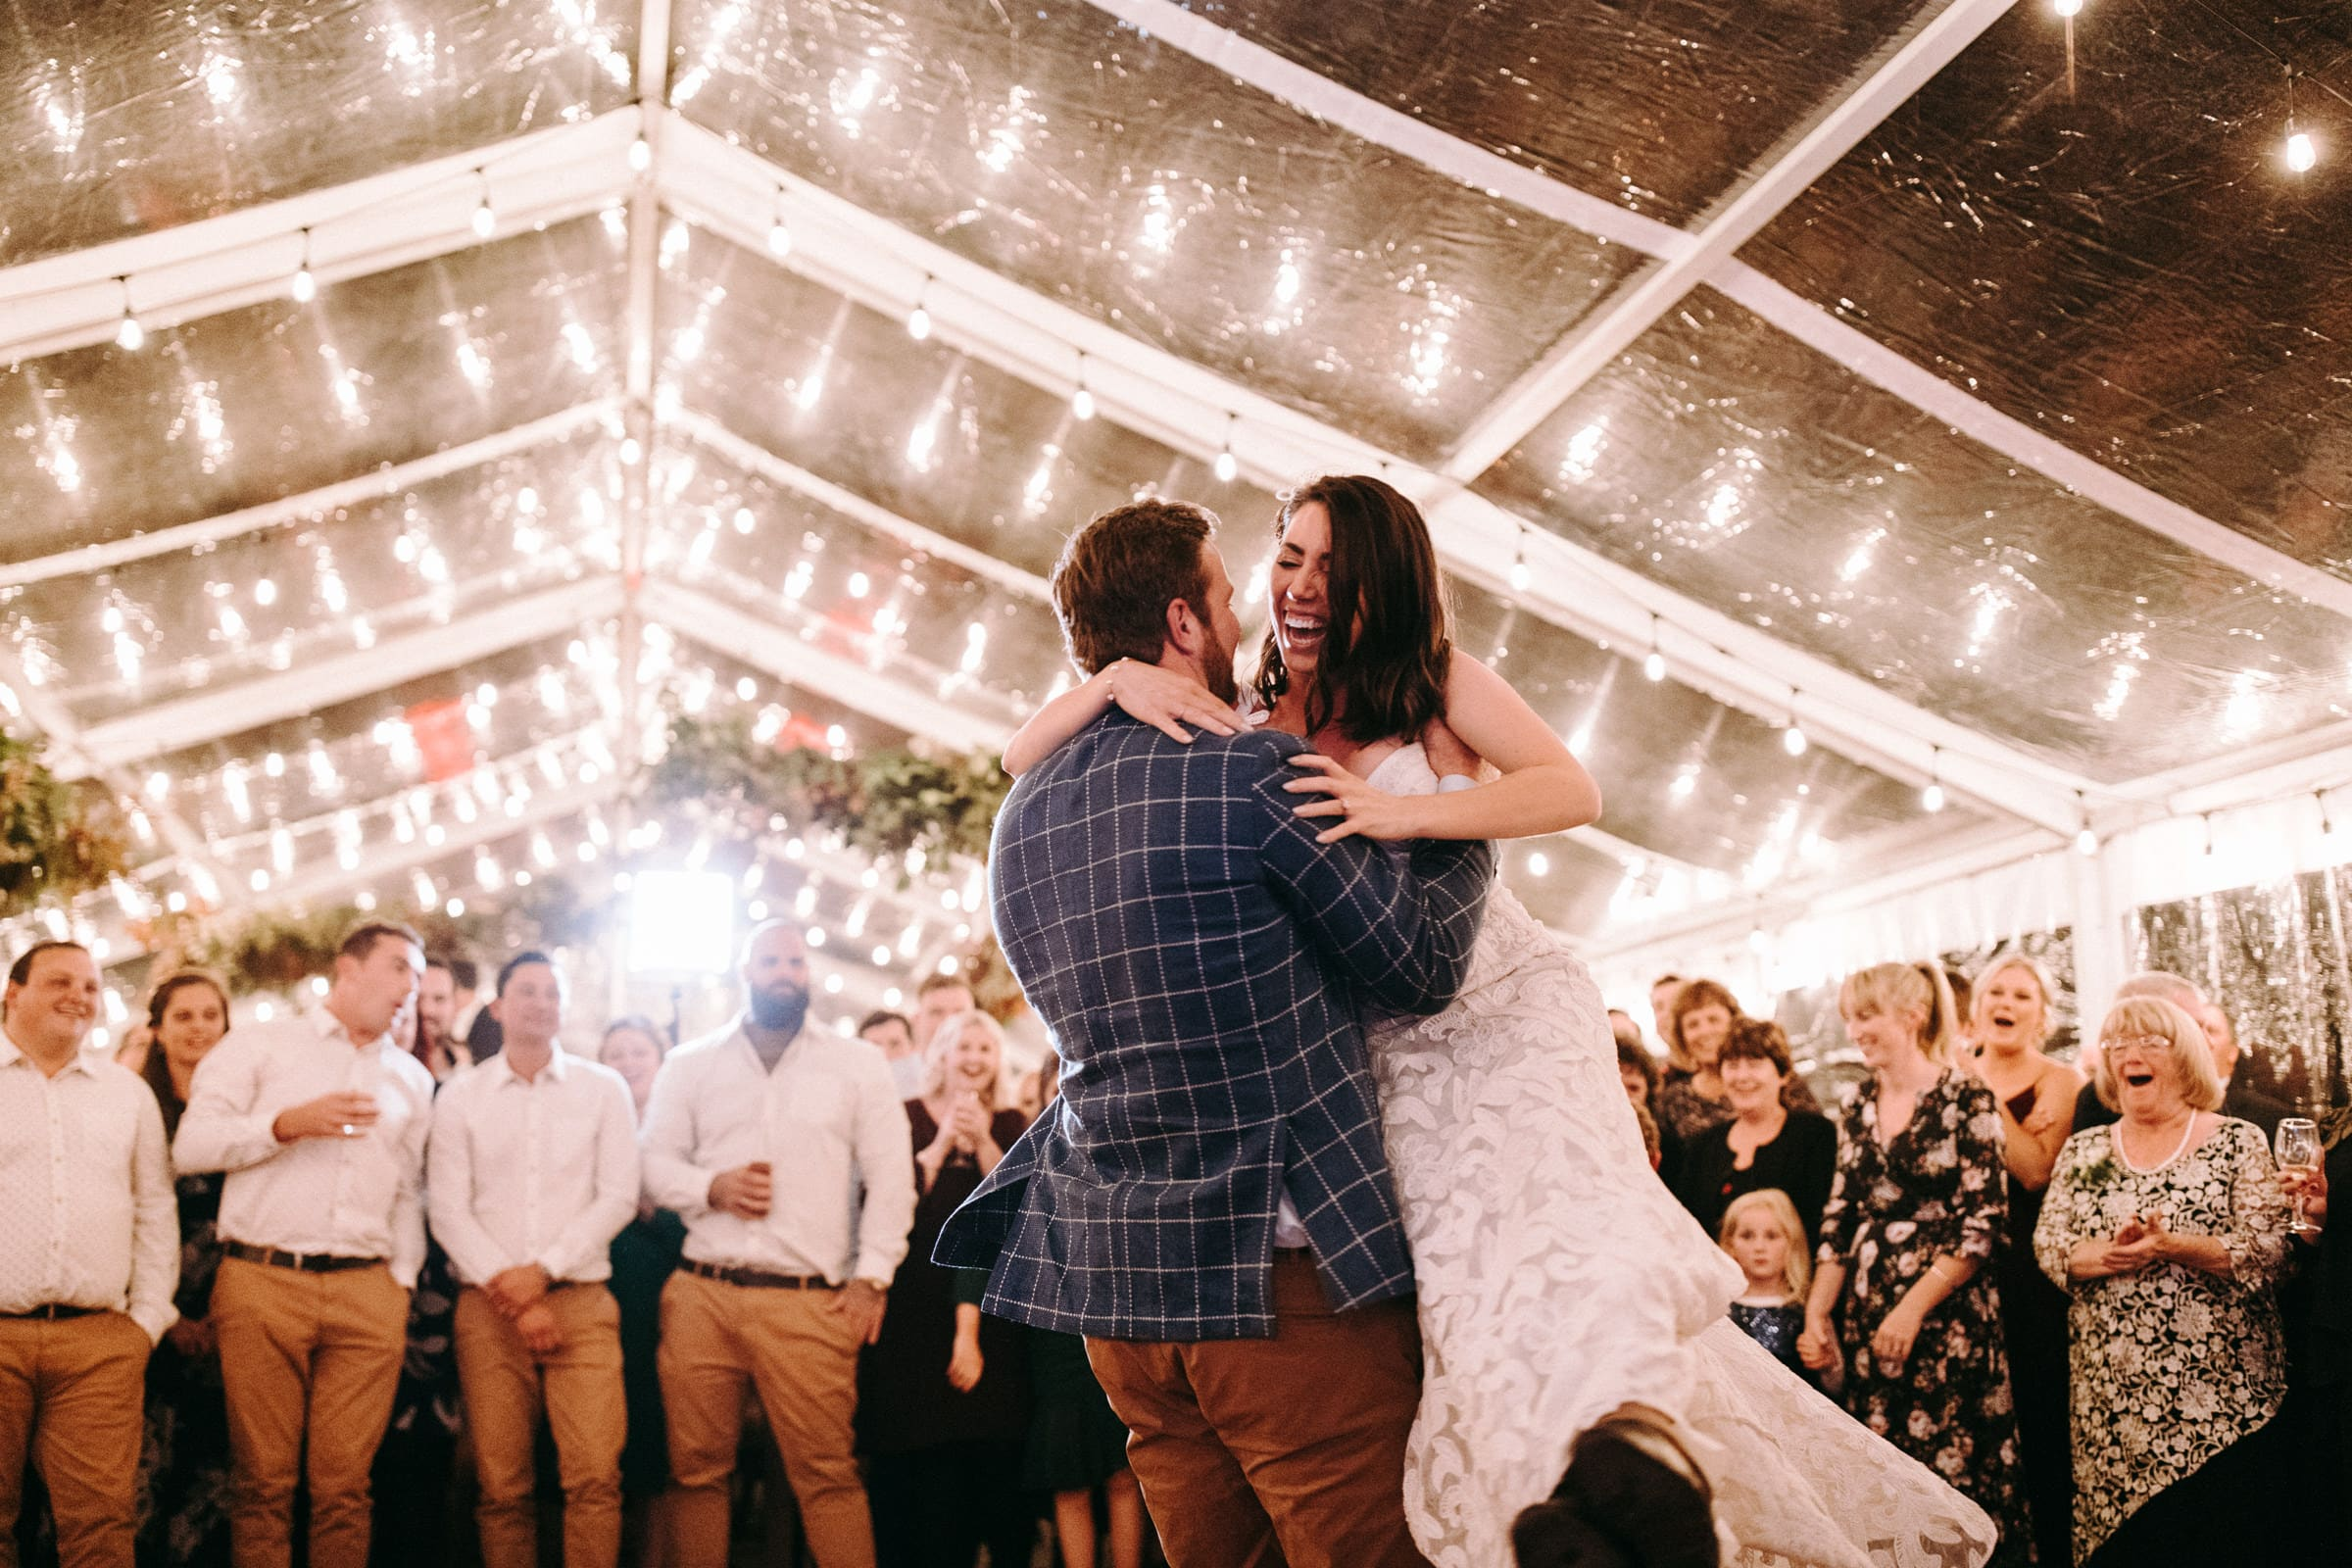 A wedding couple is dancing in a tent with their wedding guests next to them.